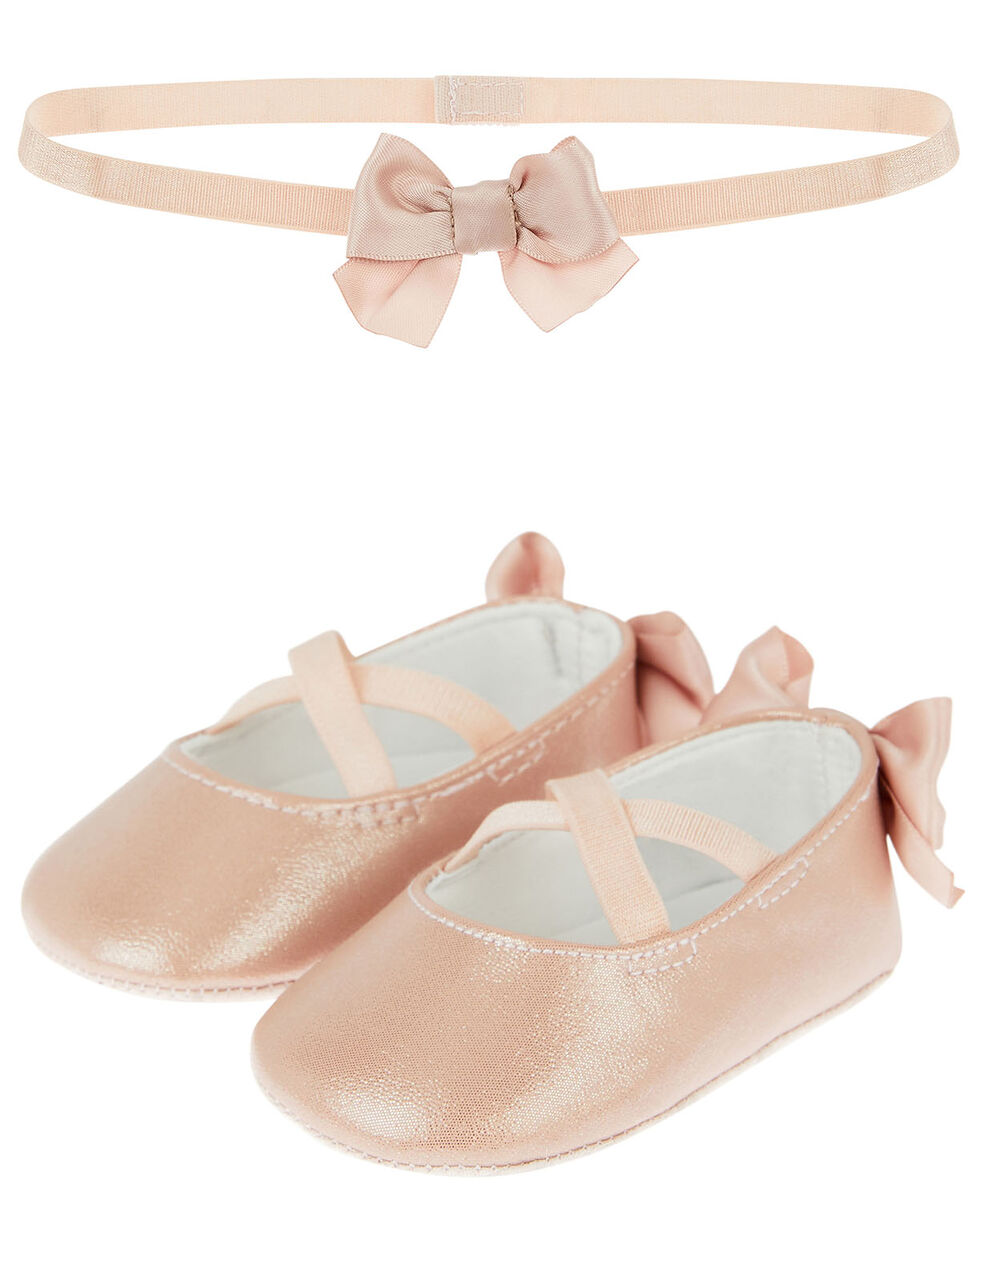 Baby Valerie Booties and Bando Set , Pink (PINK), large